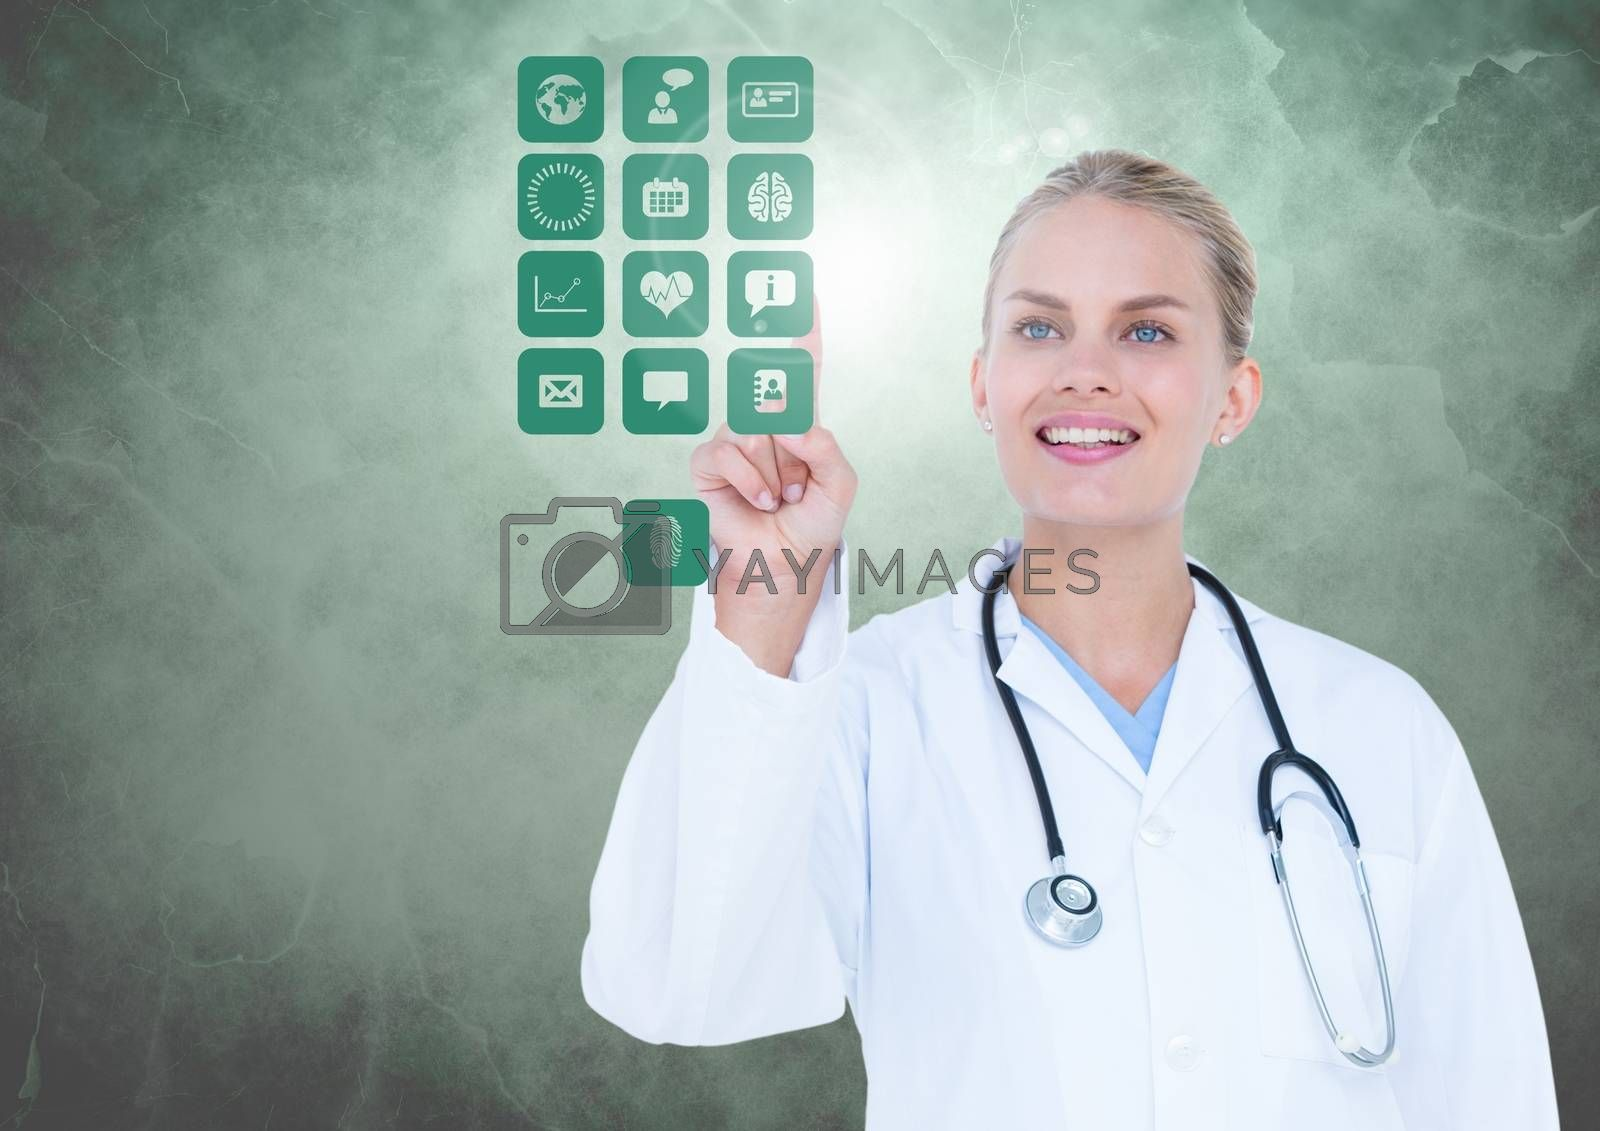 Digital composition of doctor touching digitally generated medical icons against white background